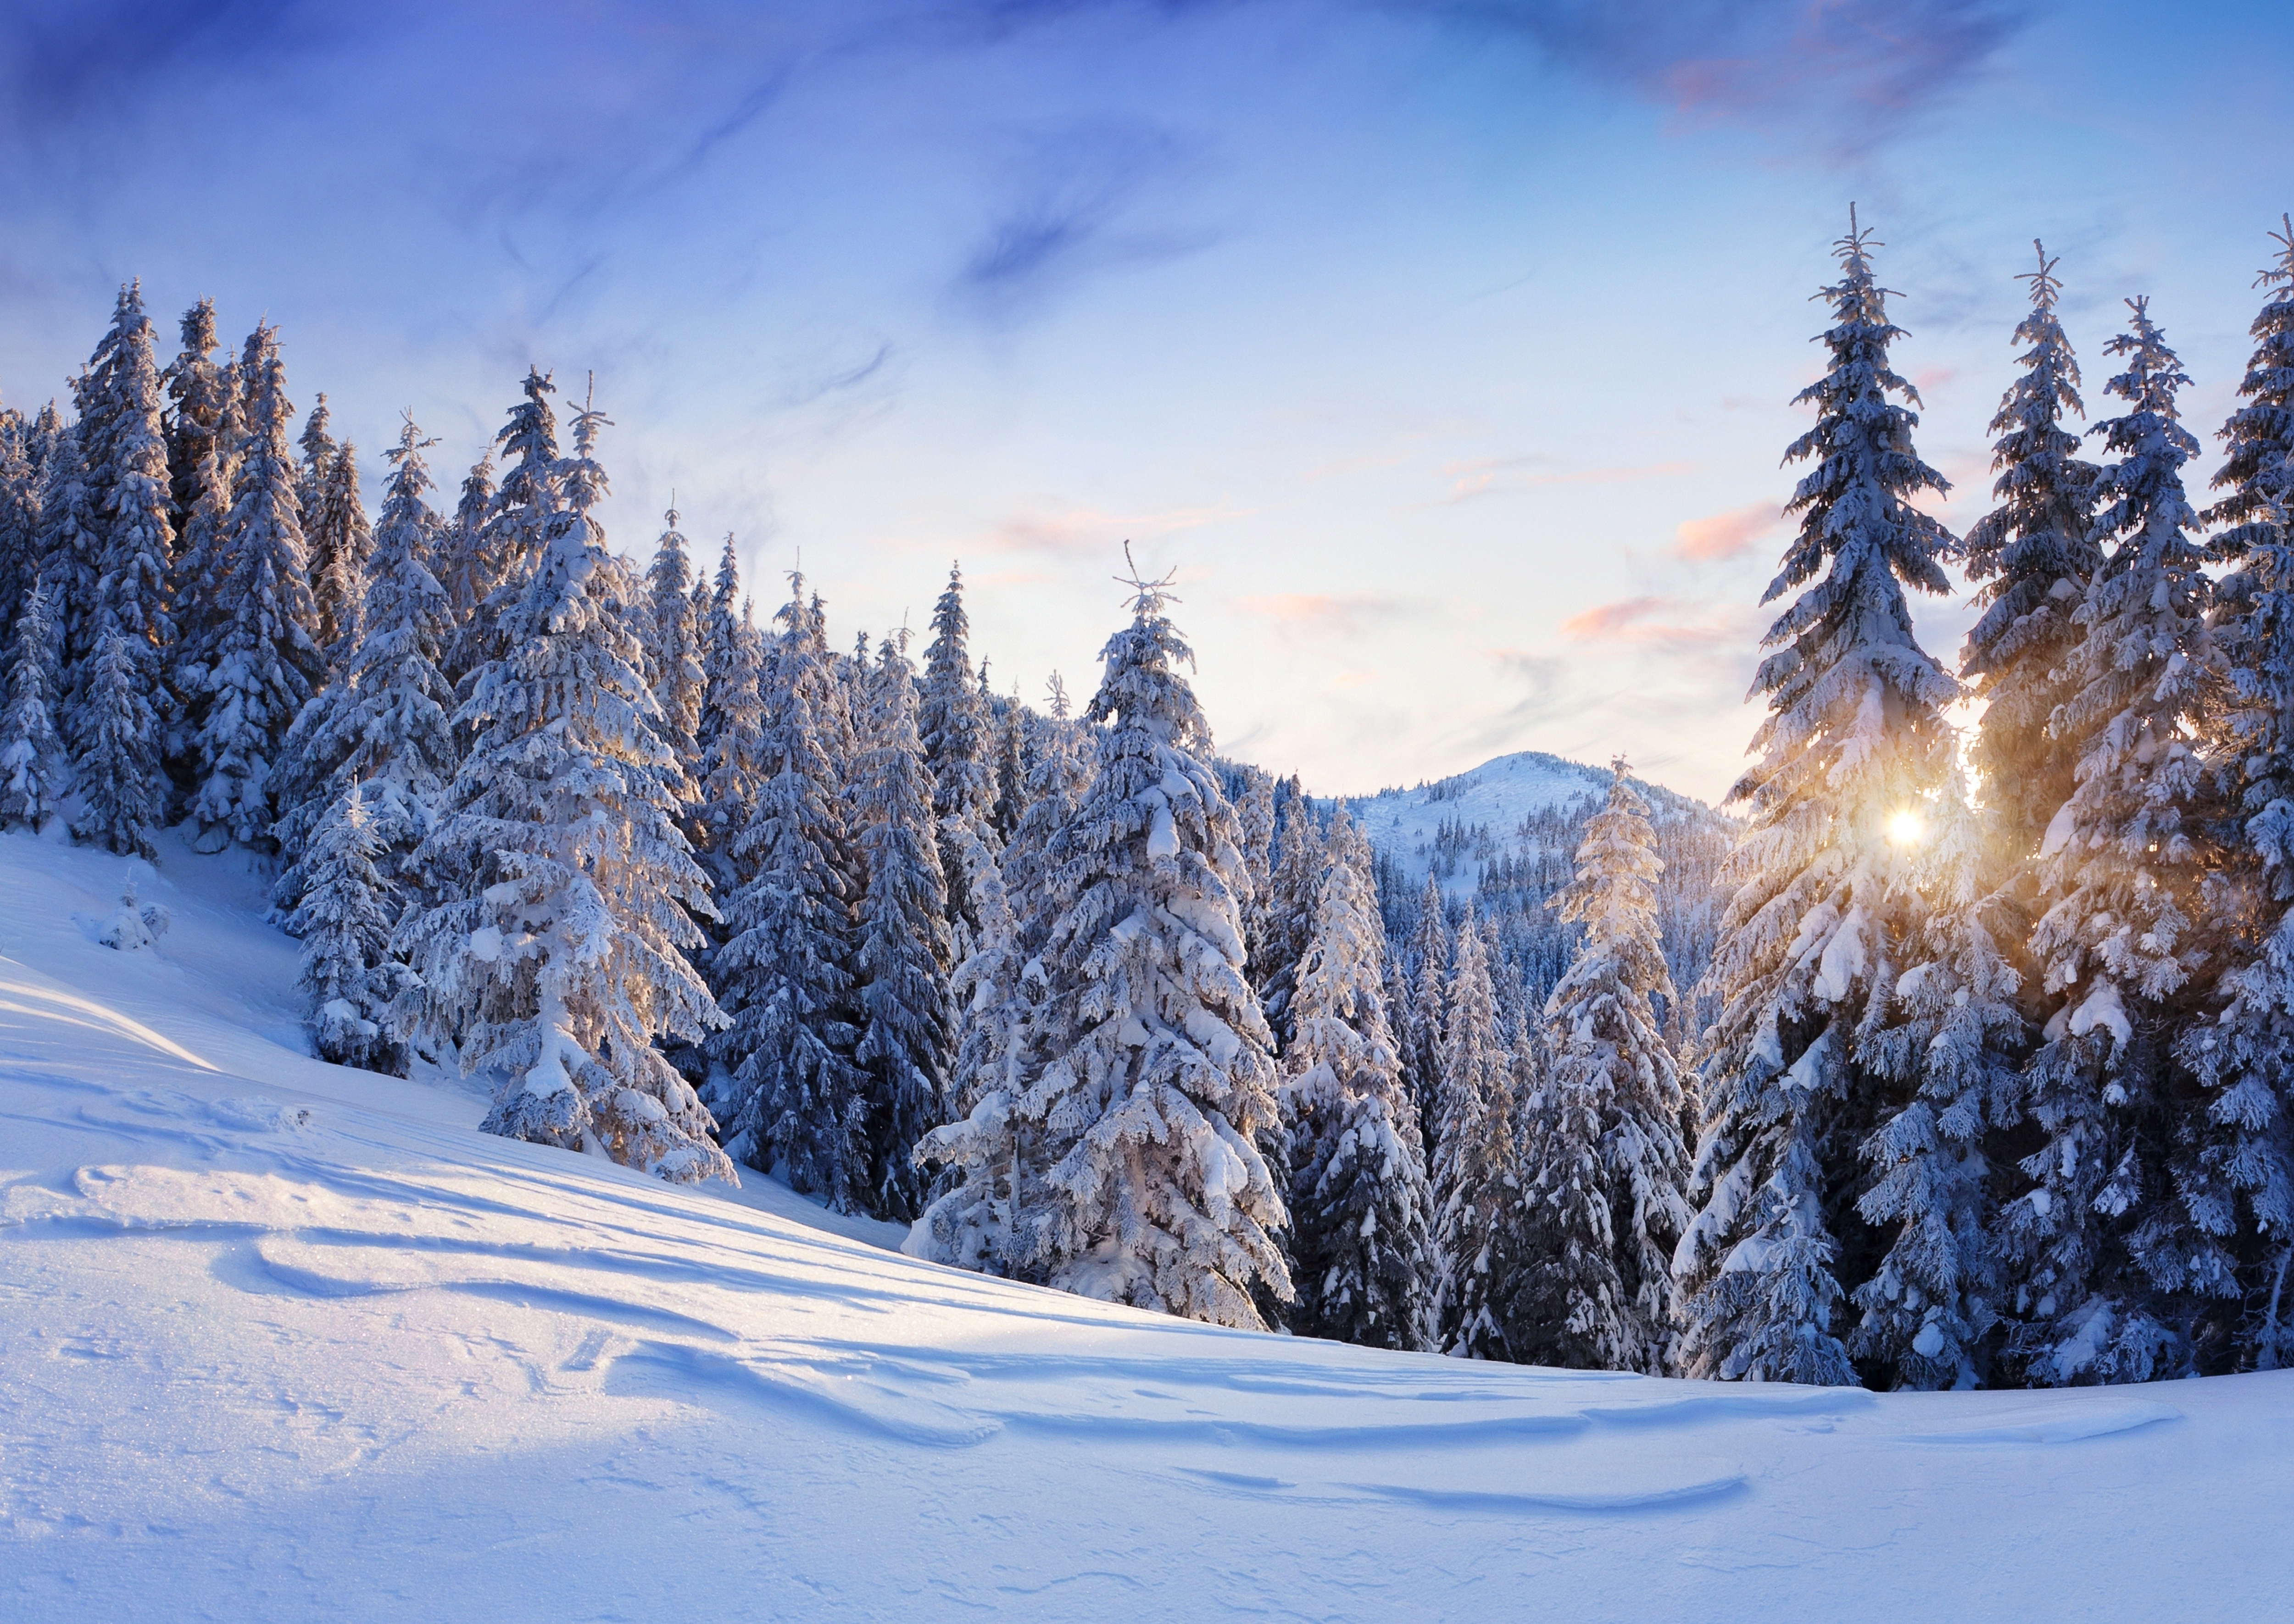 nature-winter-snow-mountains-trees-trees-firs-sky-sun-landscape